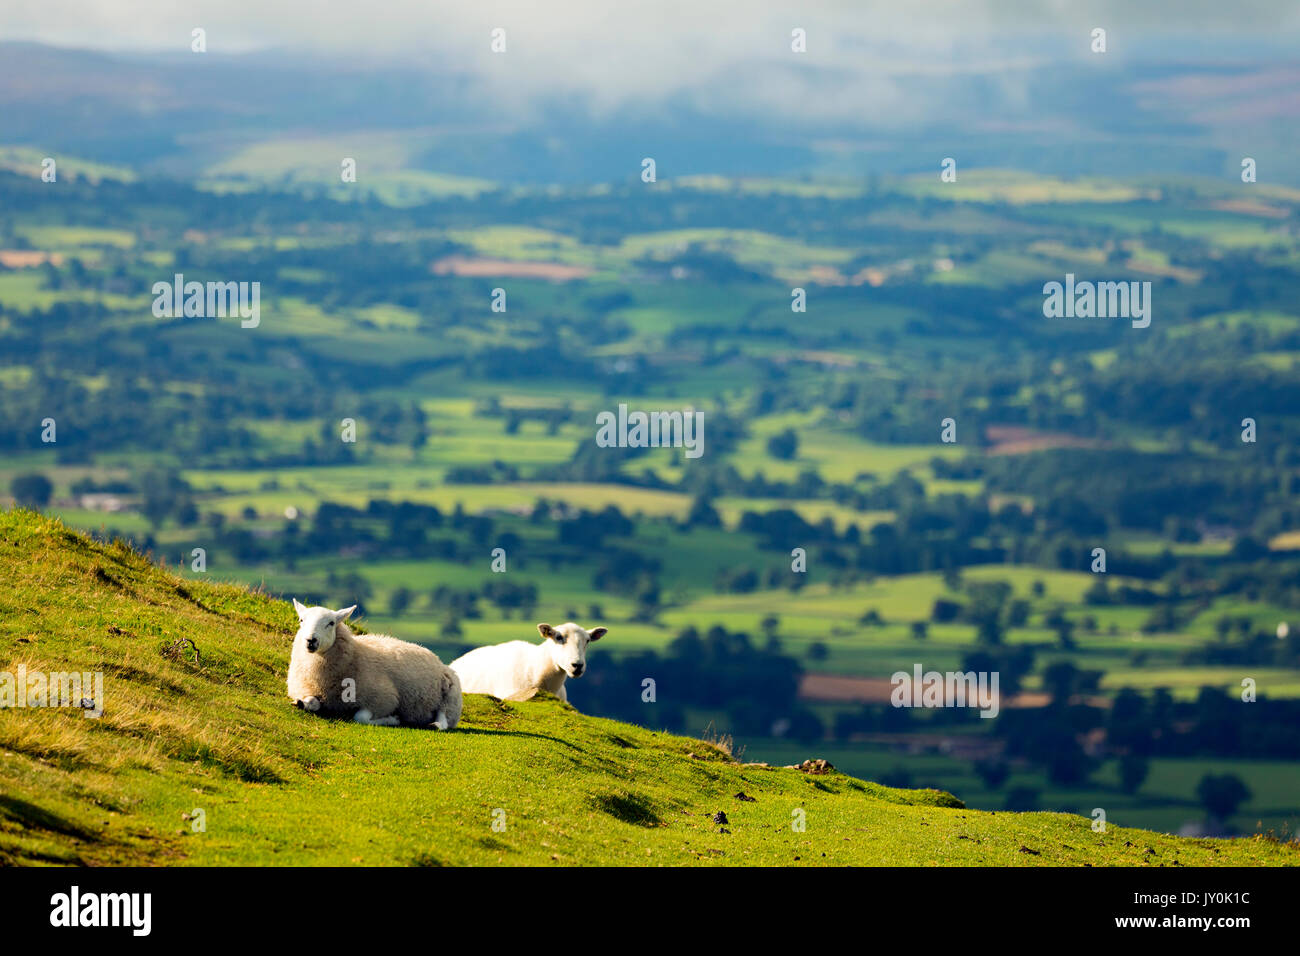 Two ewe sheep resting on Moel Famau and the Clwydian Range overlooking the Vale of Clwyd and the beautiful Welsh landscape below the hills, Wales, UK - Stock Image